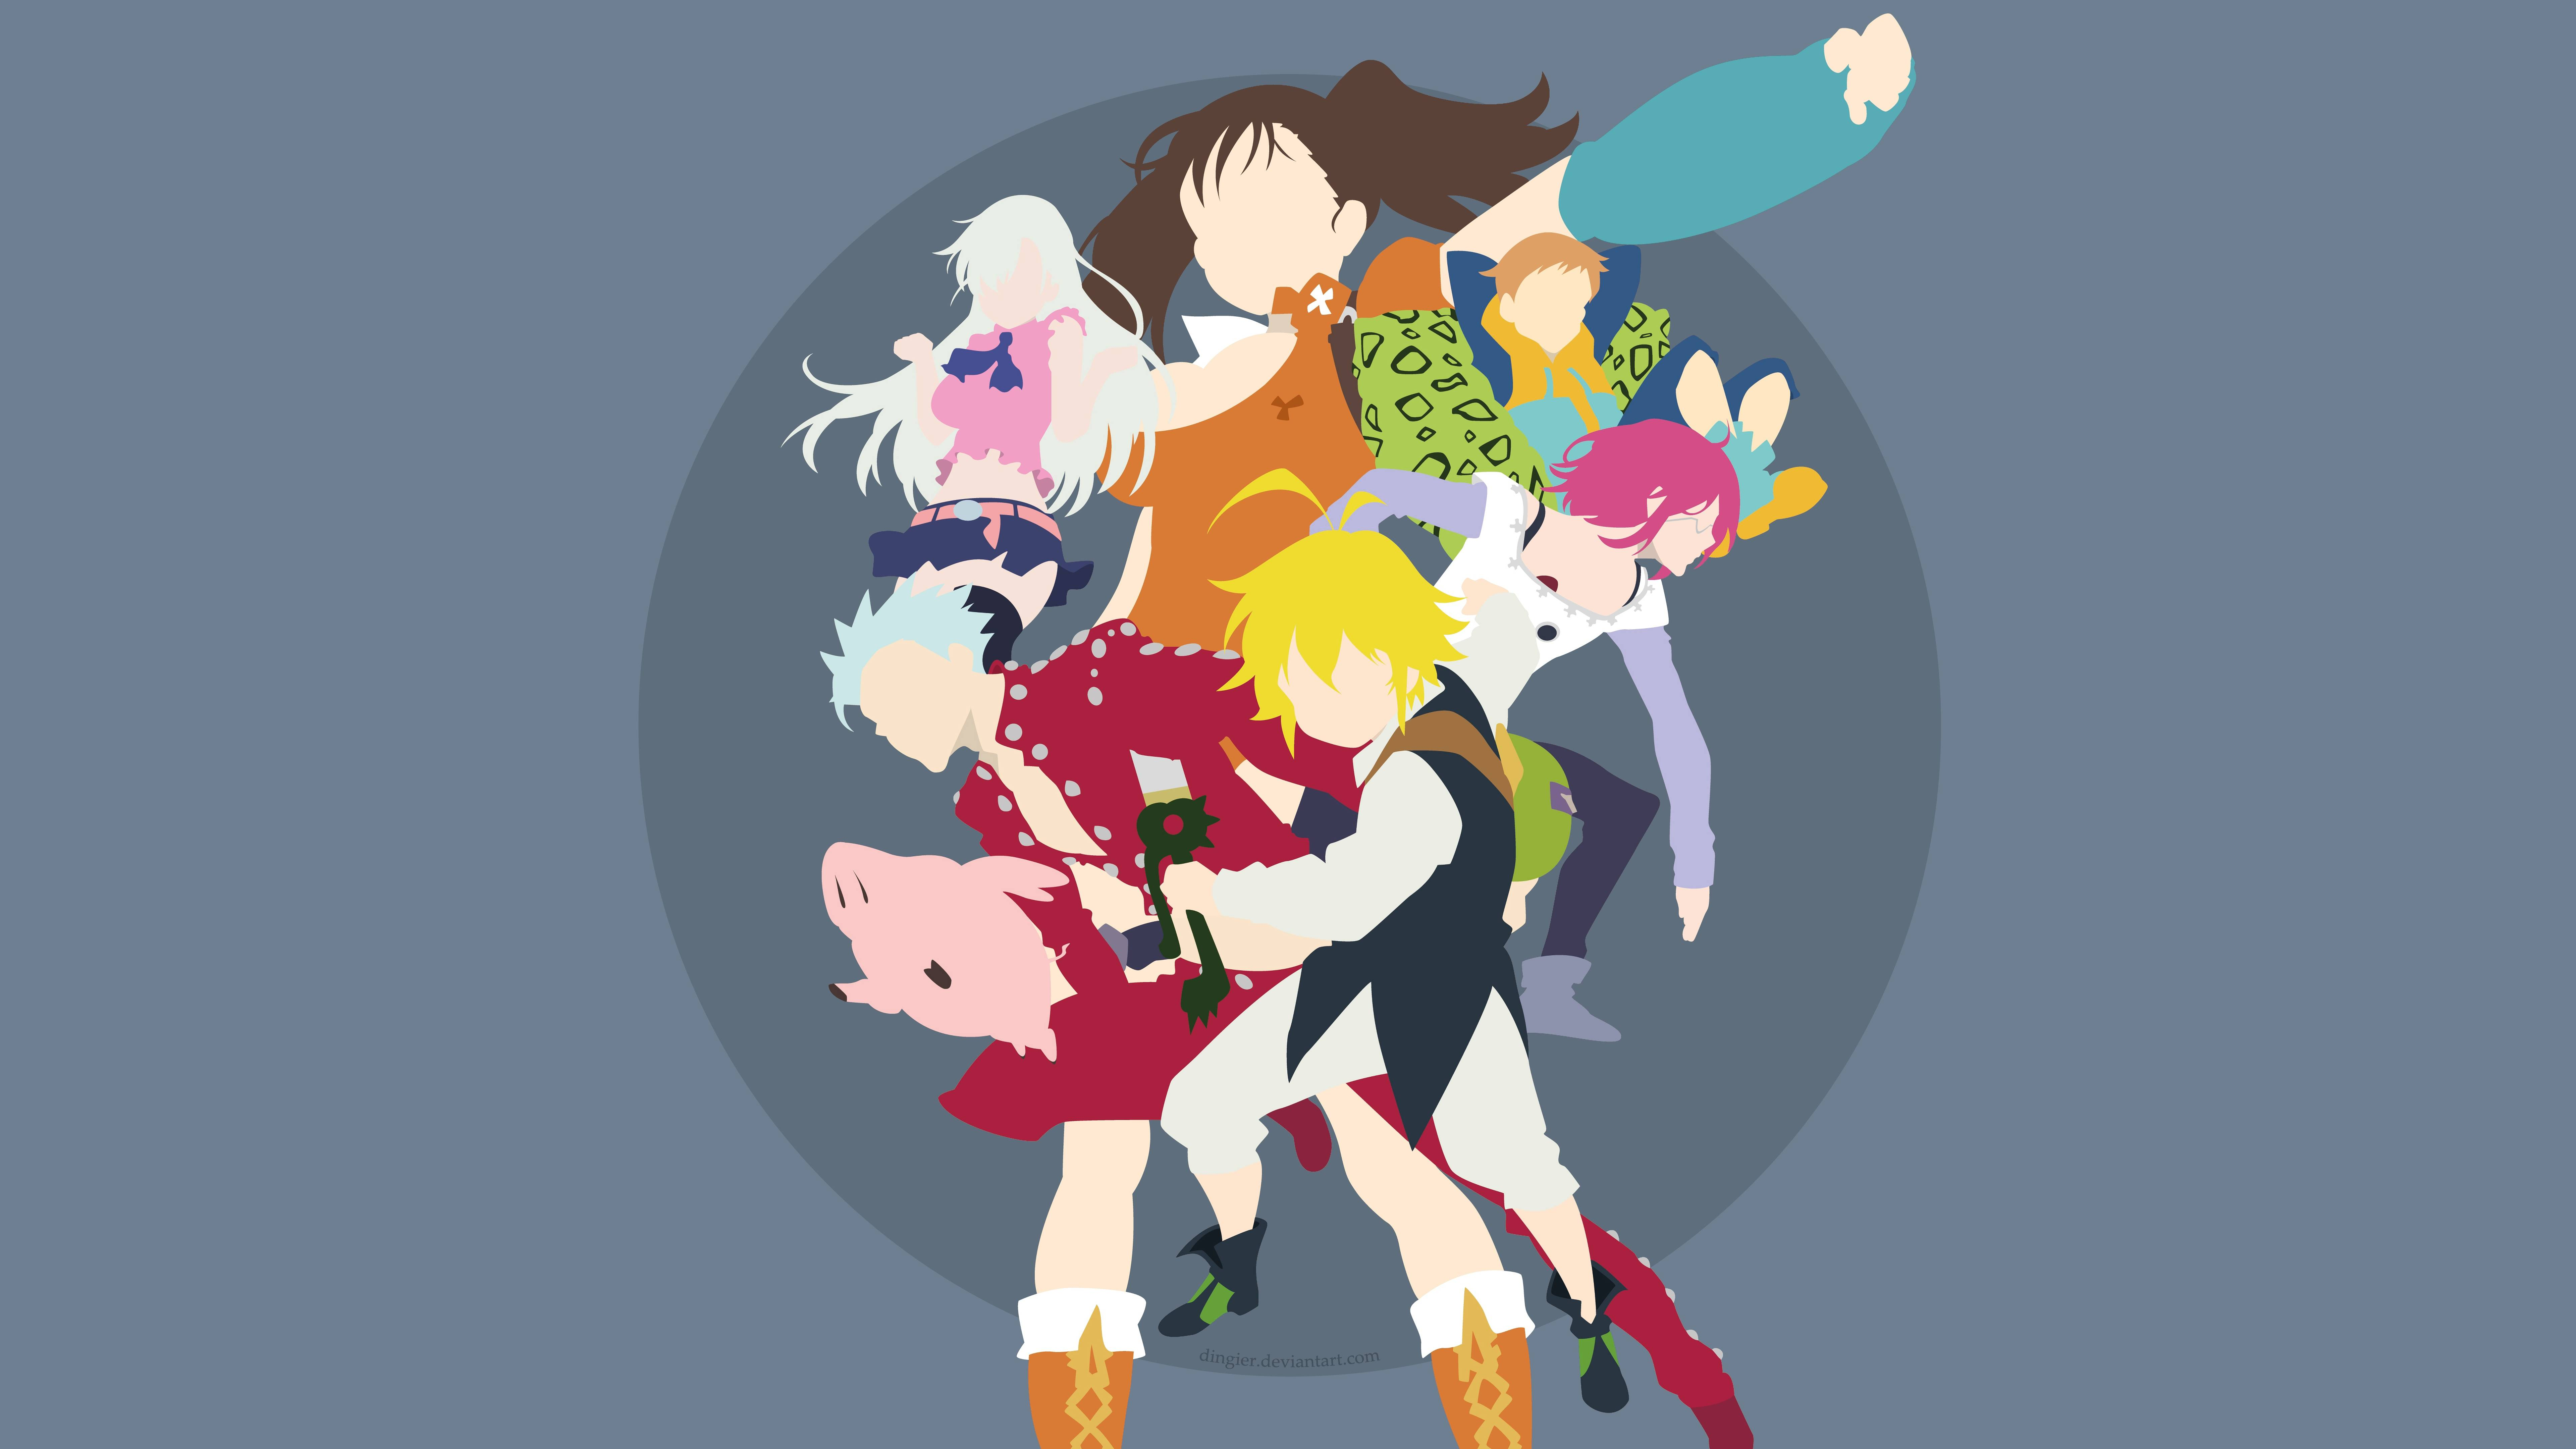 Seven Deadly Sins HD Android Wallpapers - Wallpaper Cave